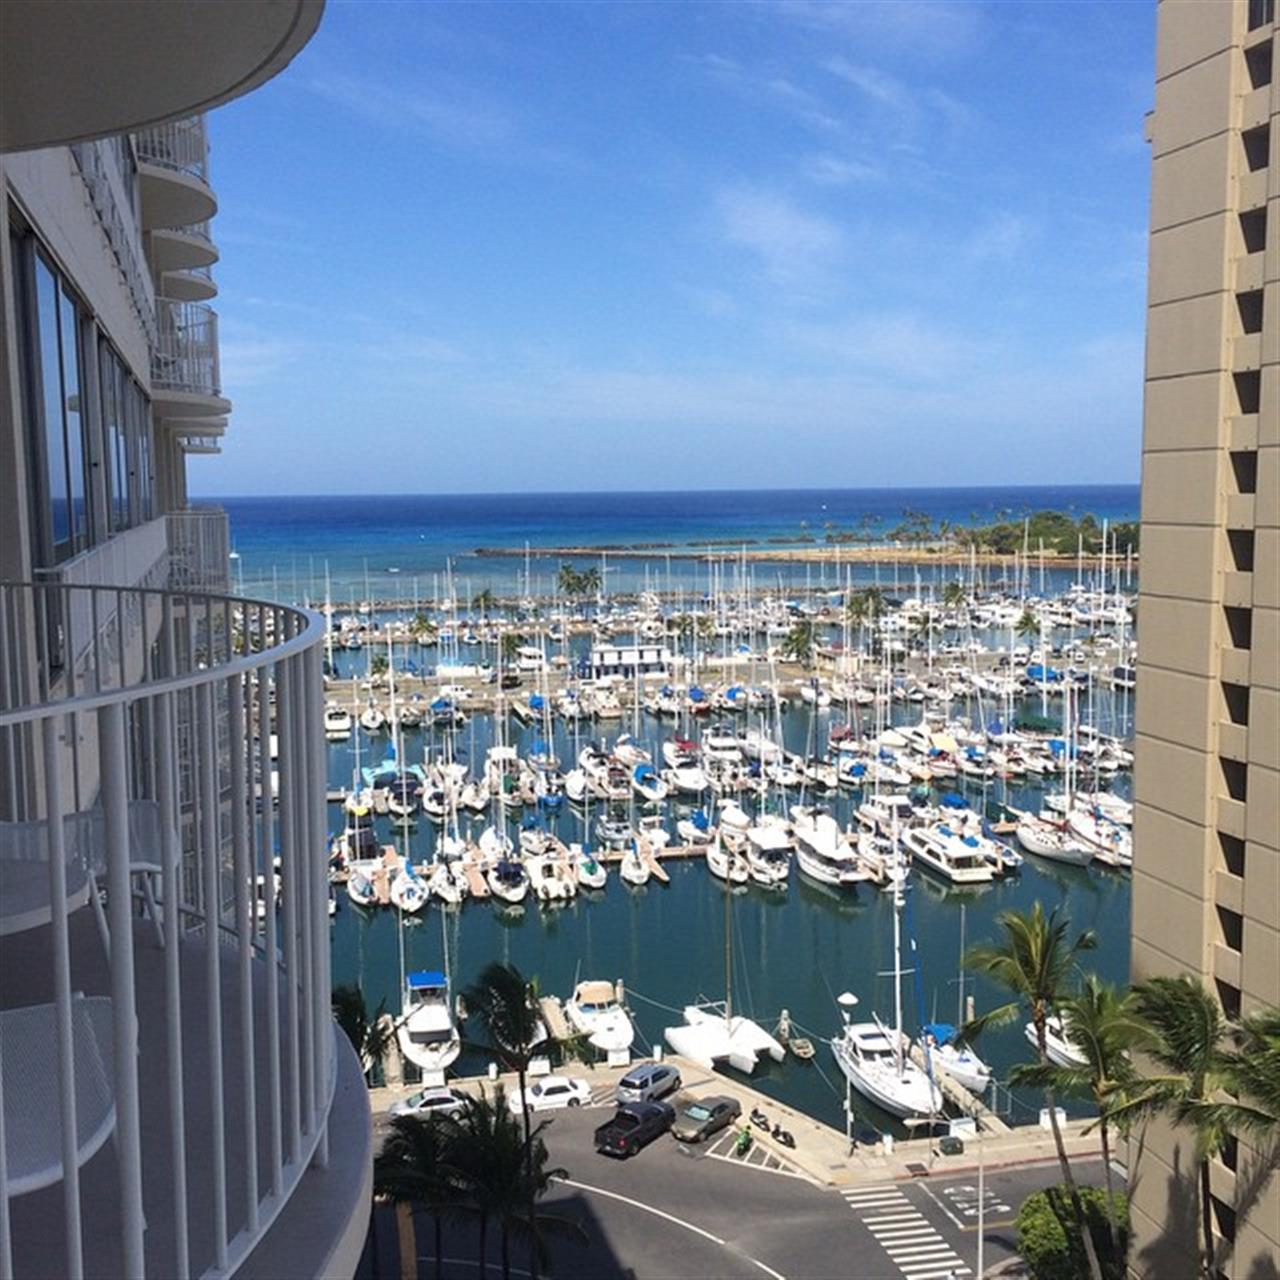 It's a beautiful day in #waikiki!! #happydos #modernhonolulu #leadingreLocal #oahu #hawaii #hawaiilife